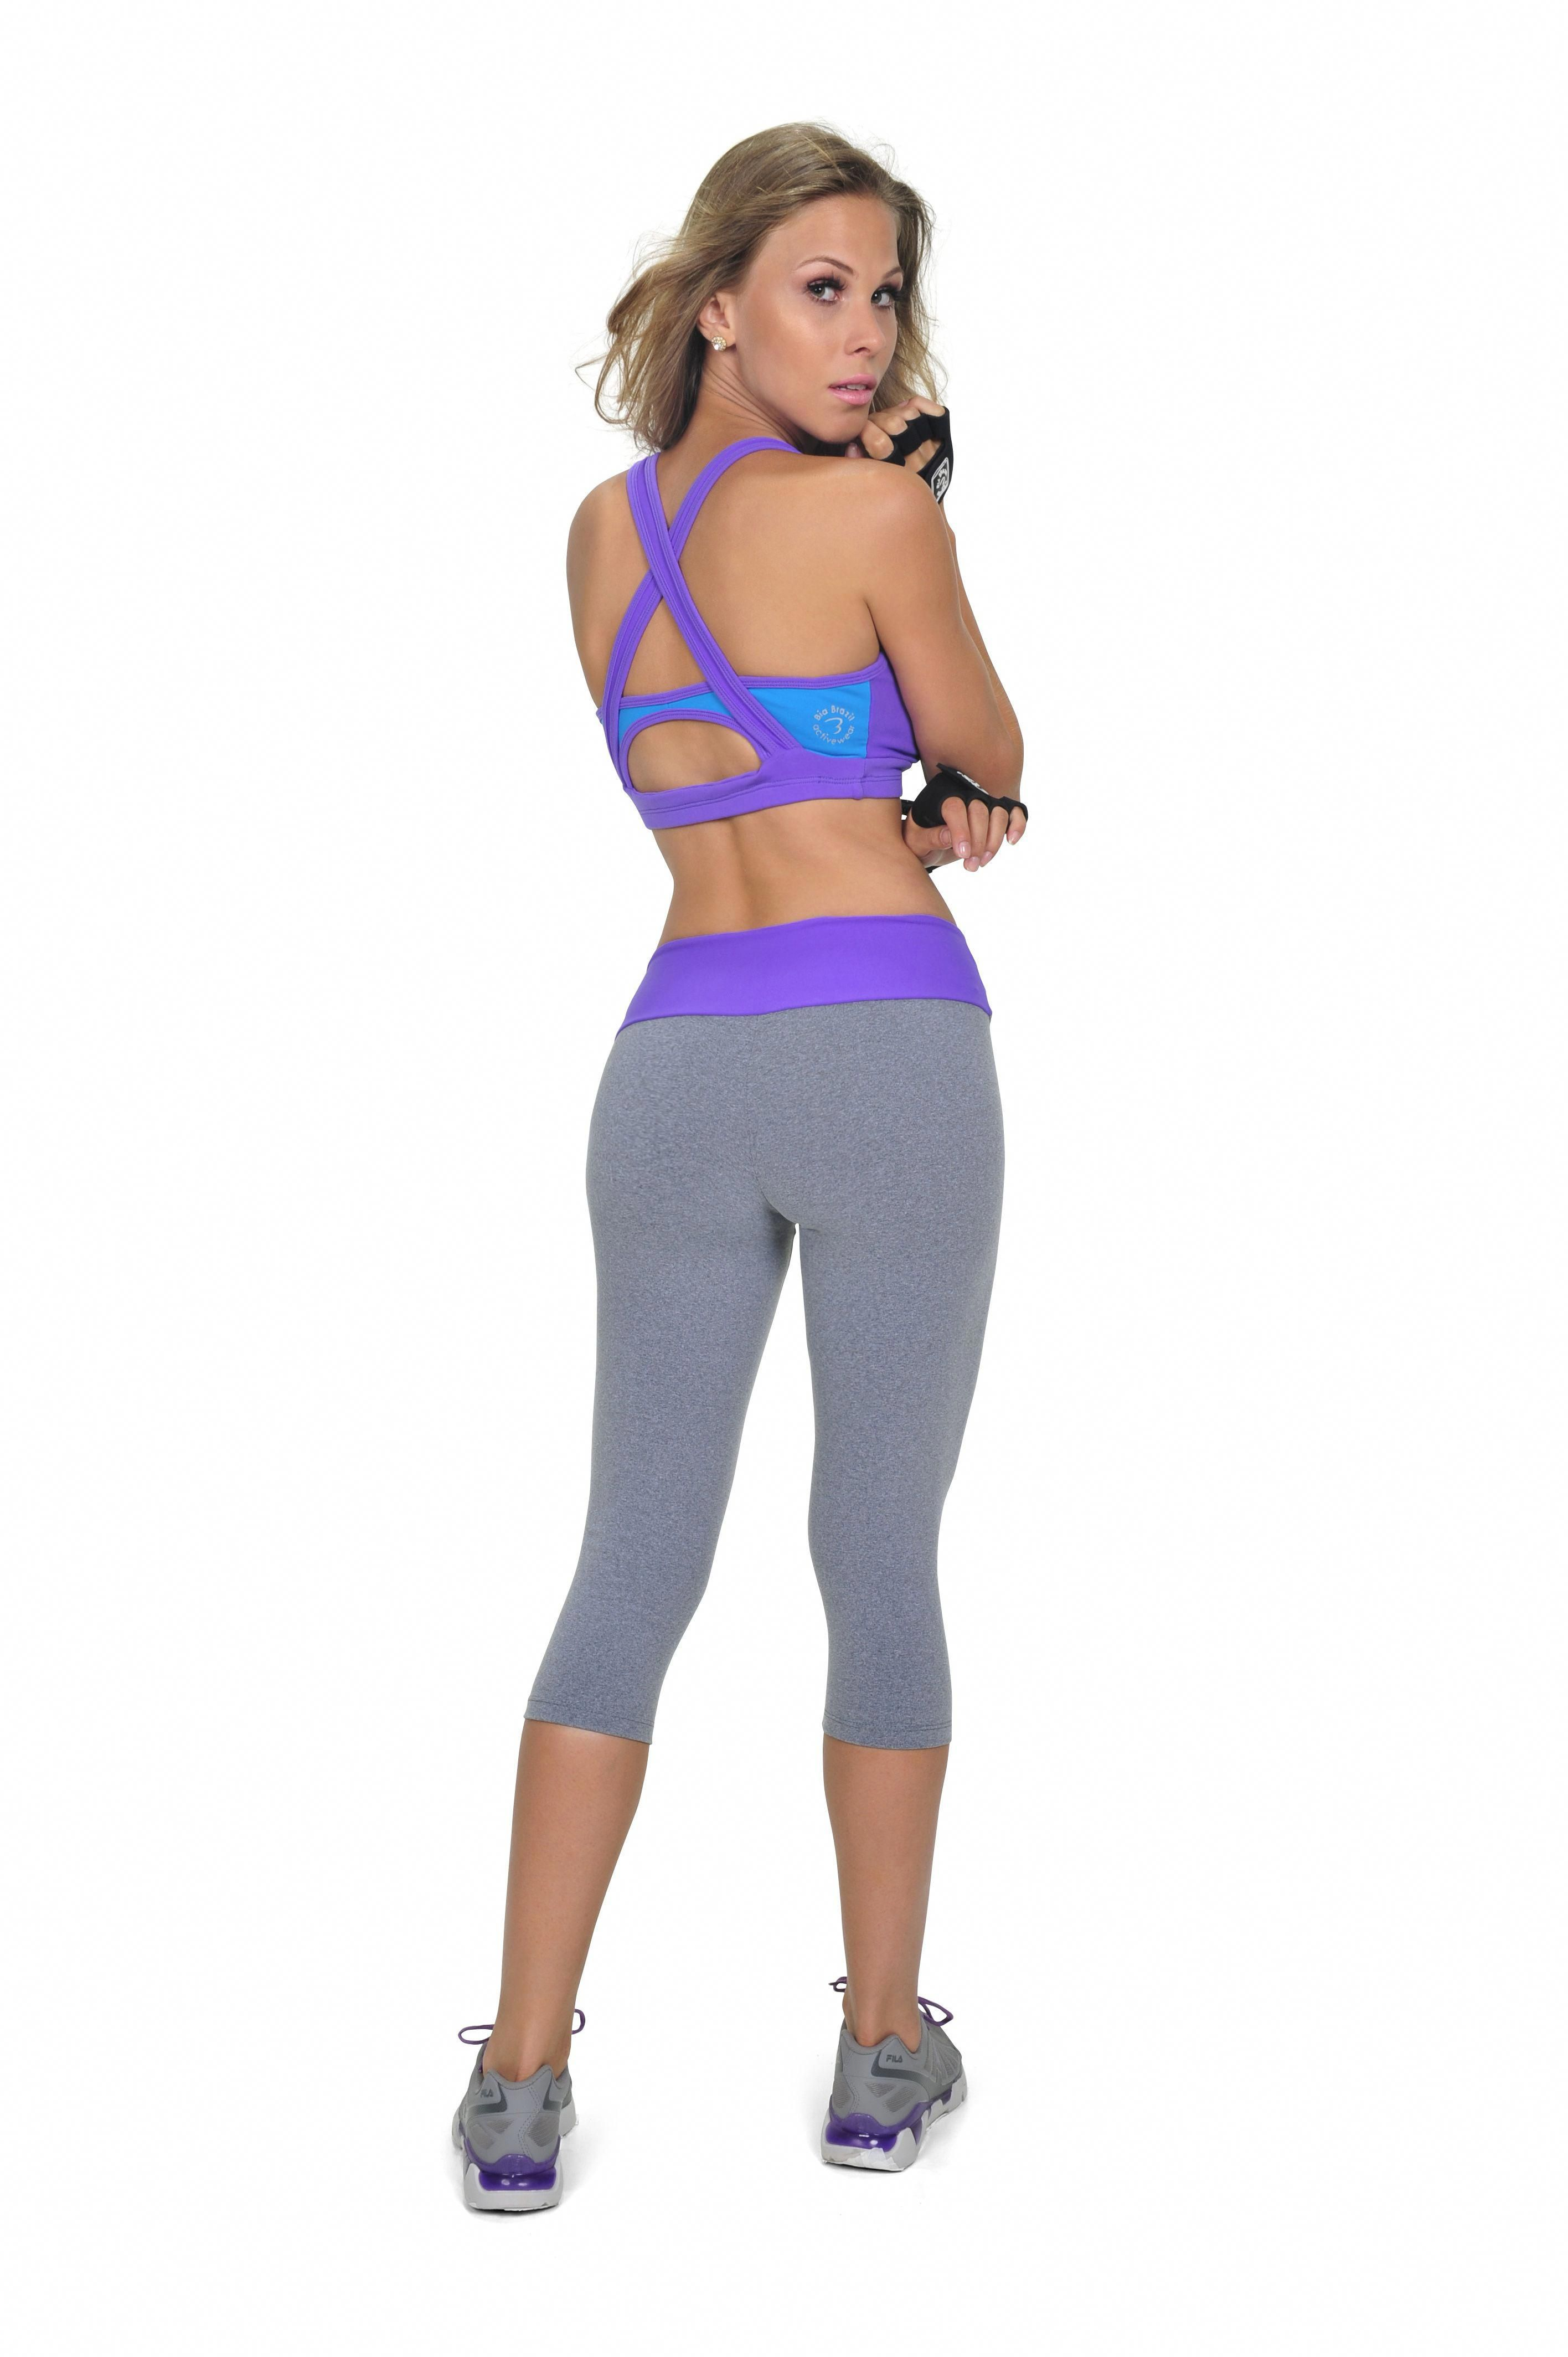 d0b82adfd852bf Bia Brazil - NEW Cute Workout Clothes by BEST FIT BY BRAZIL  www.bestfitbybrazil.